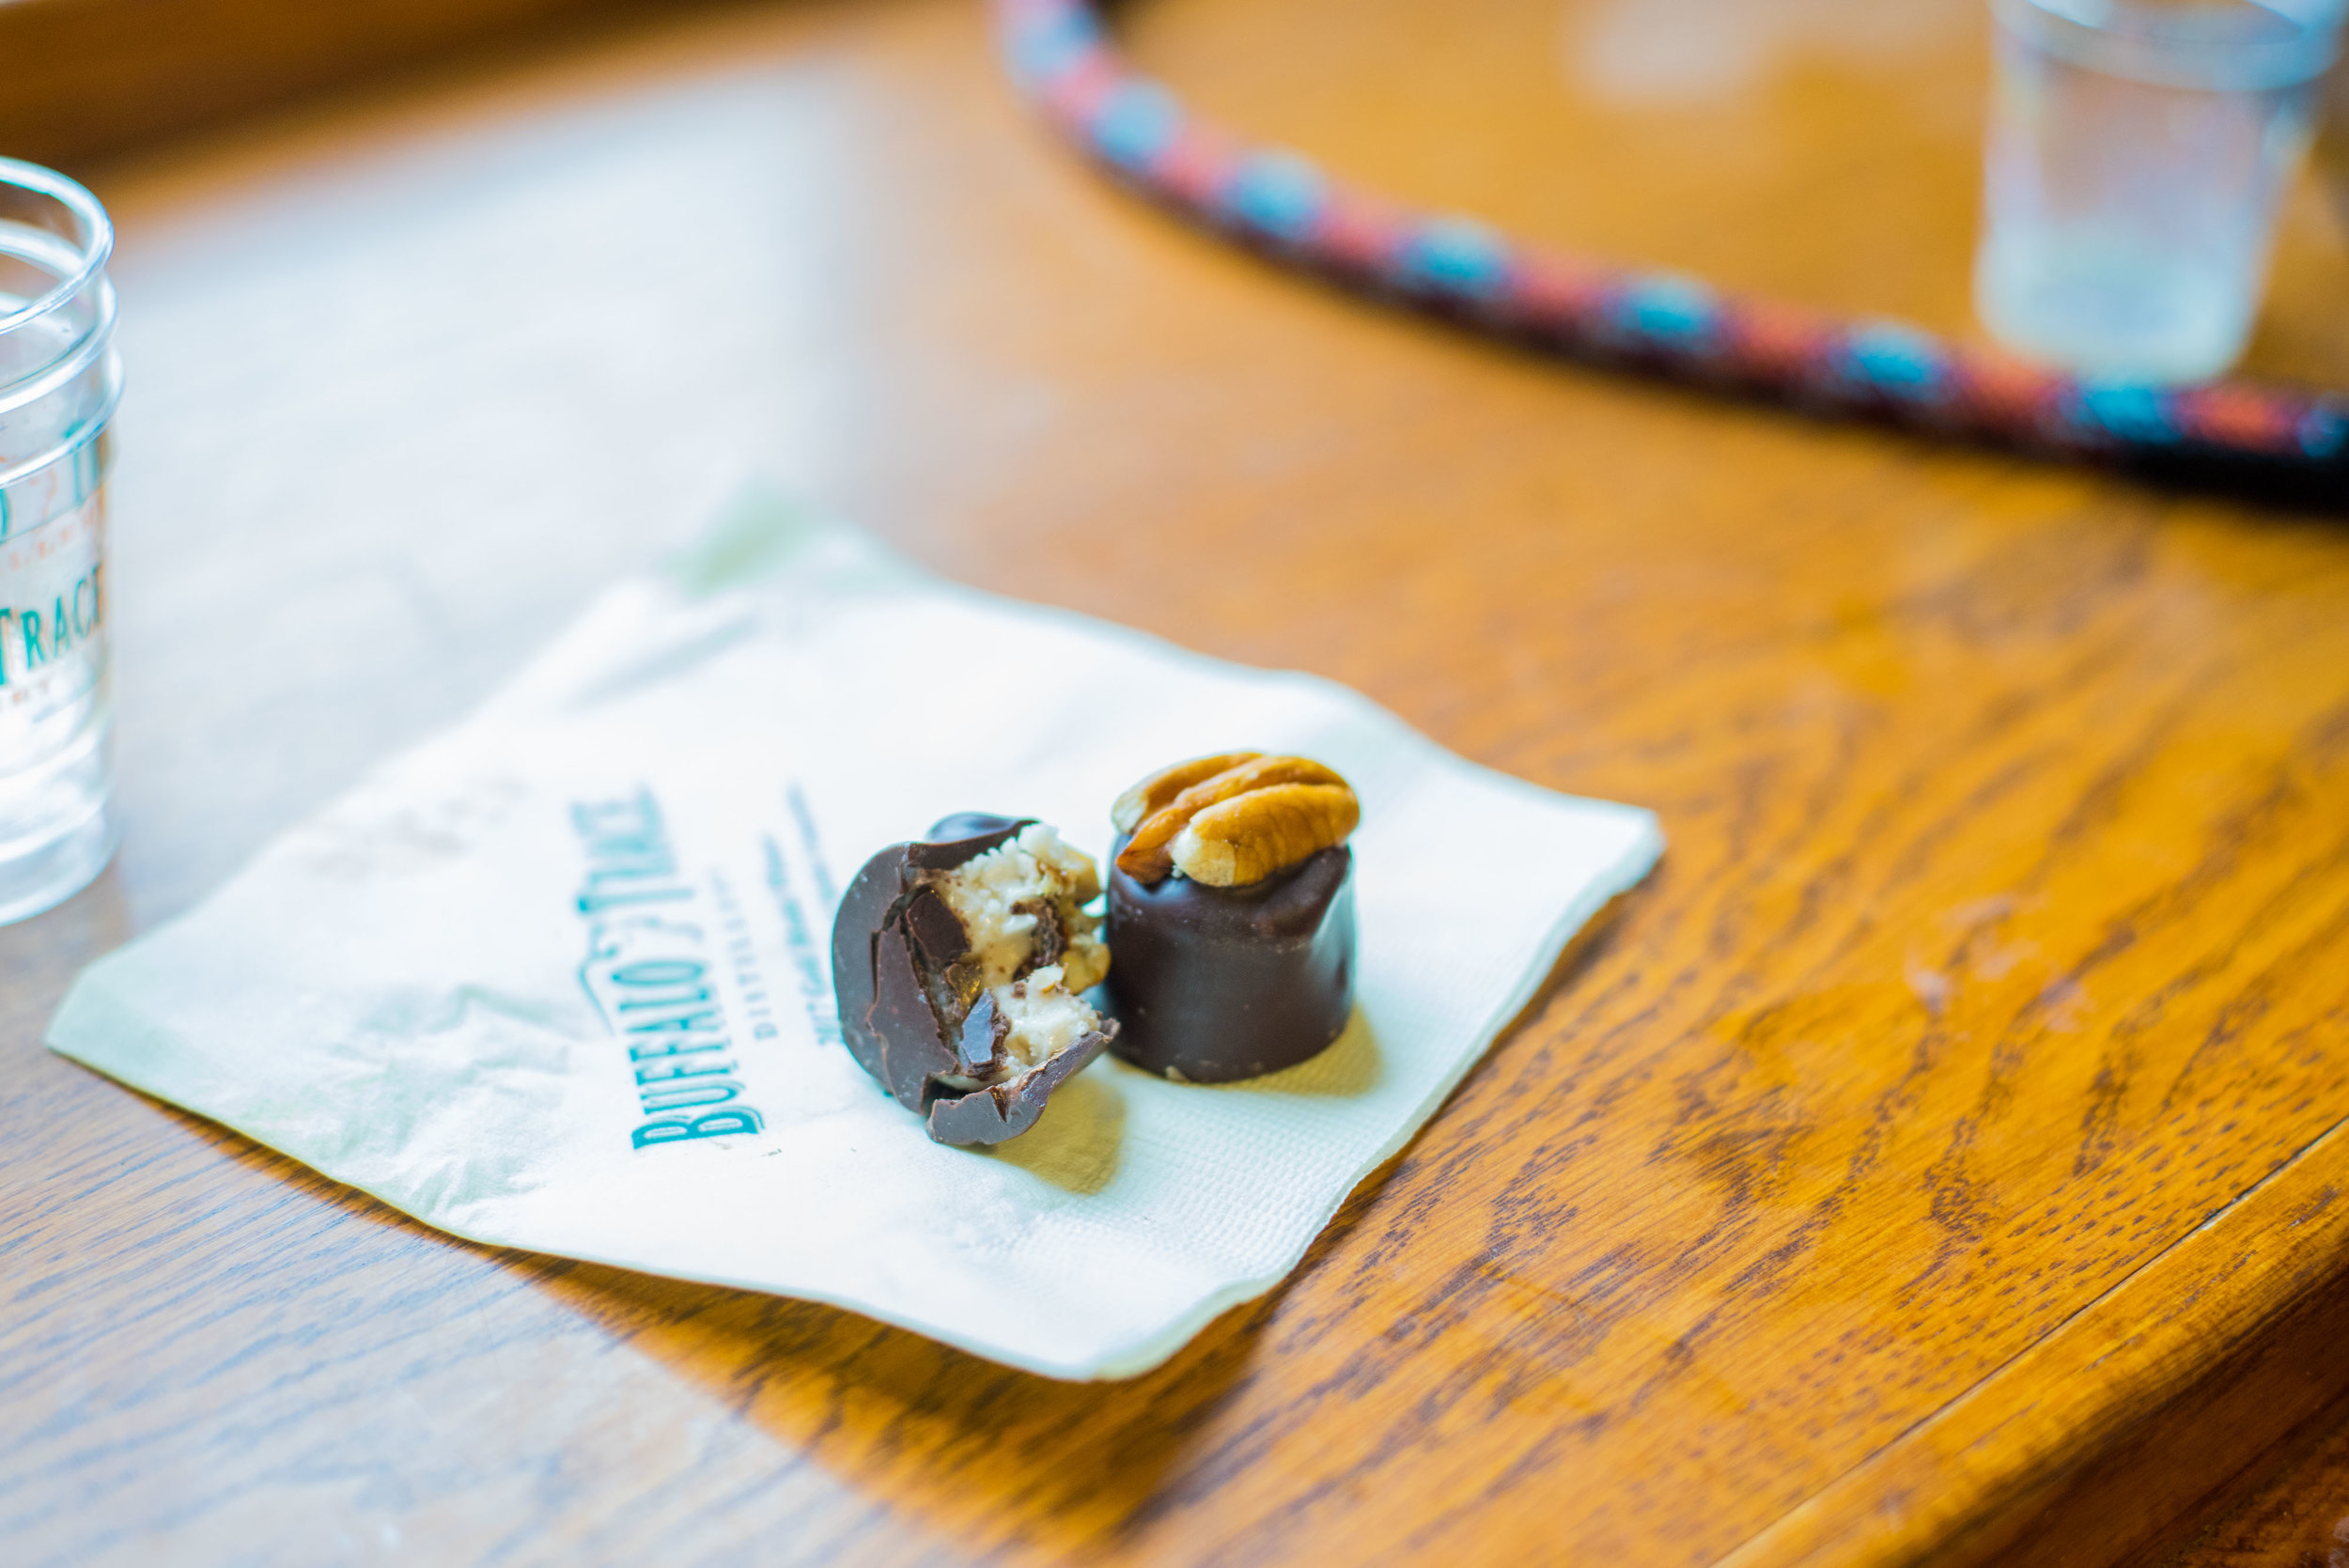 If you've never had a Bourbon Chocolate, we highly recommend them